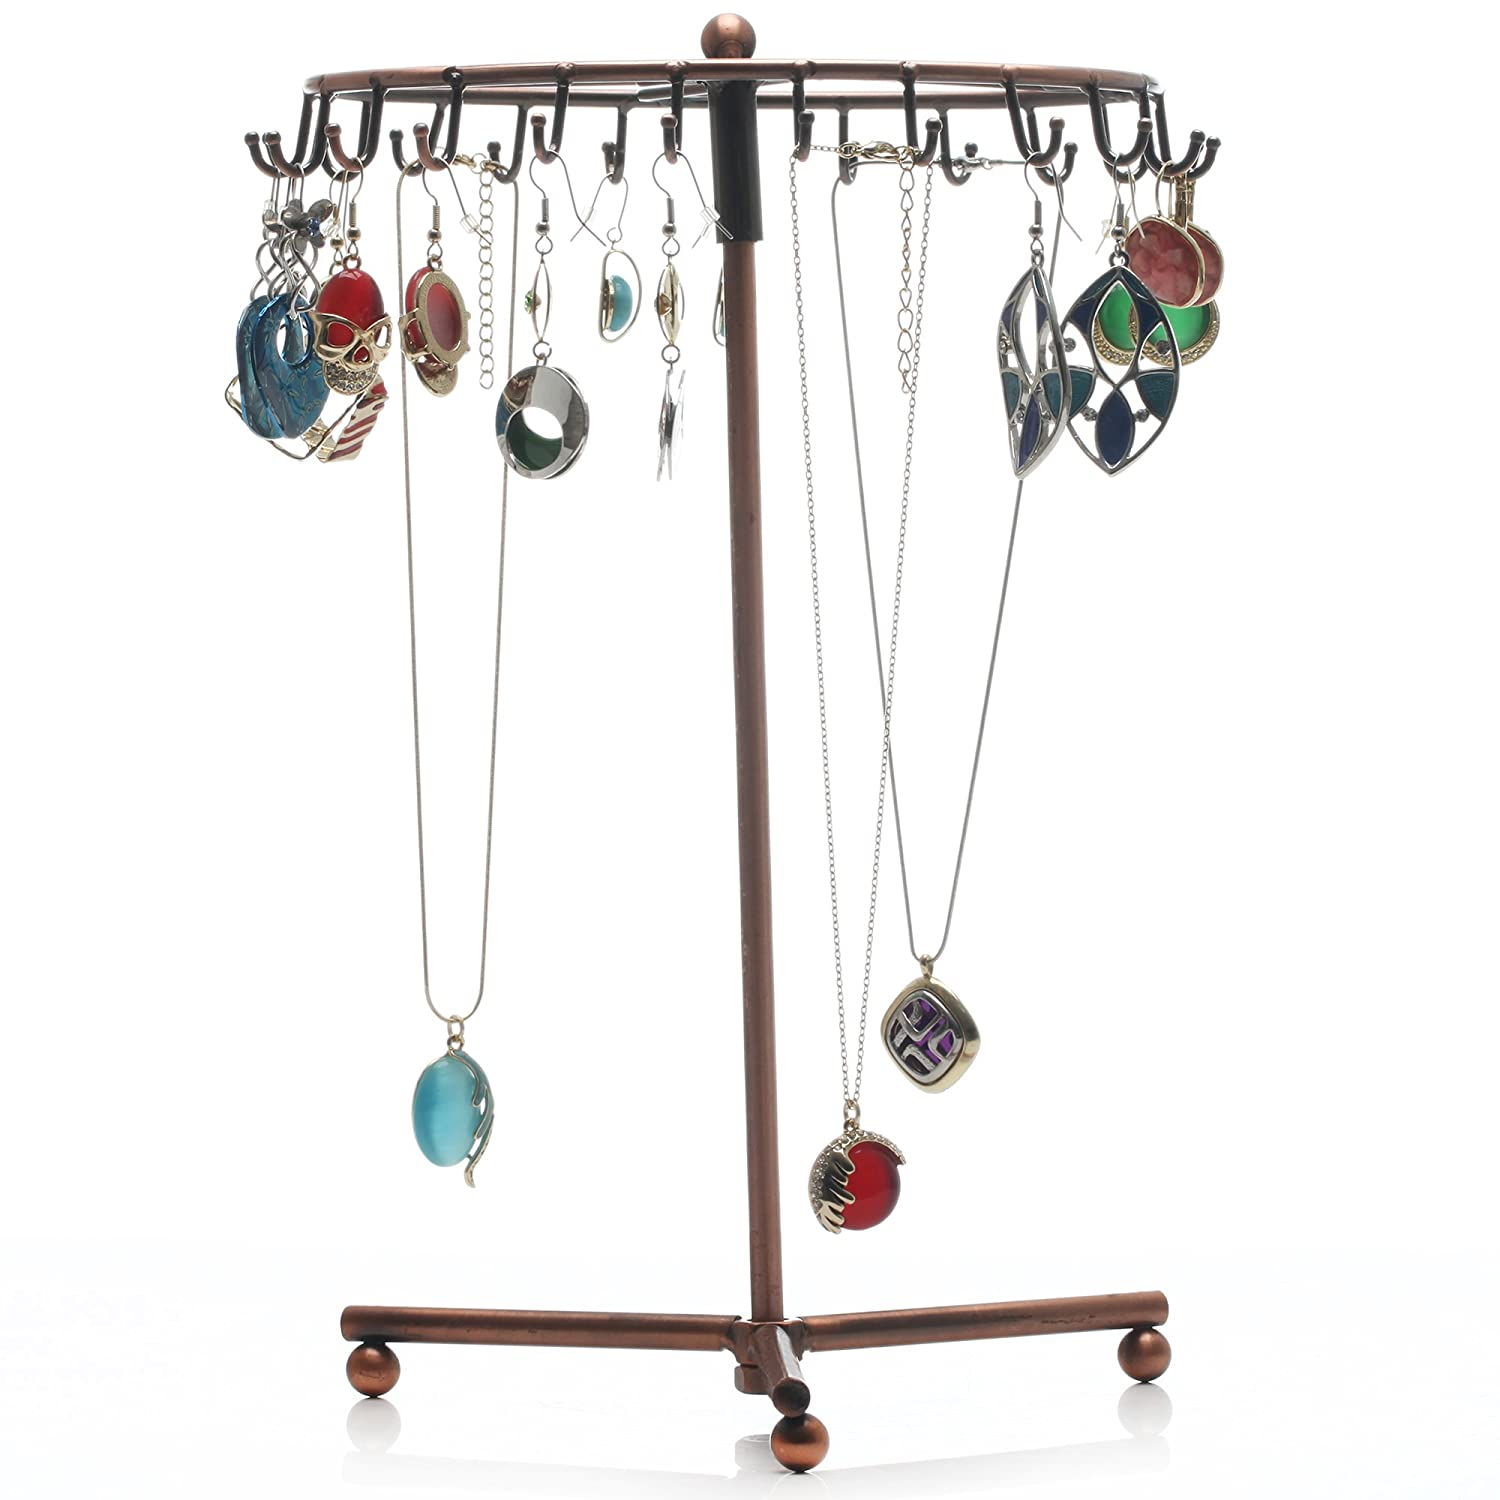 Readaeer® Rotating Jewelry Holder Stand Display Organizer for Earrings/ Necklaces/ Bracelets COMINHKPR100559